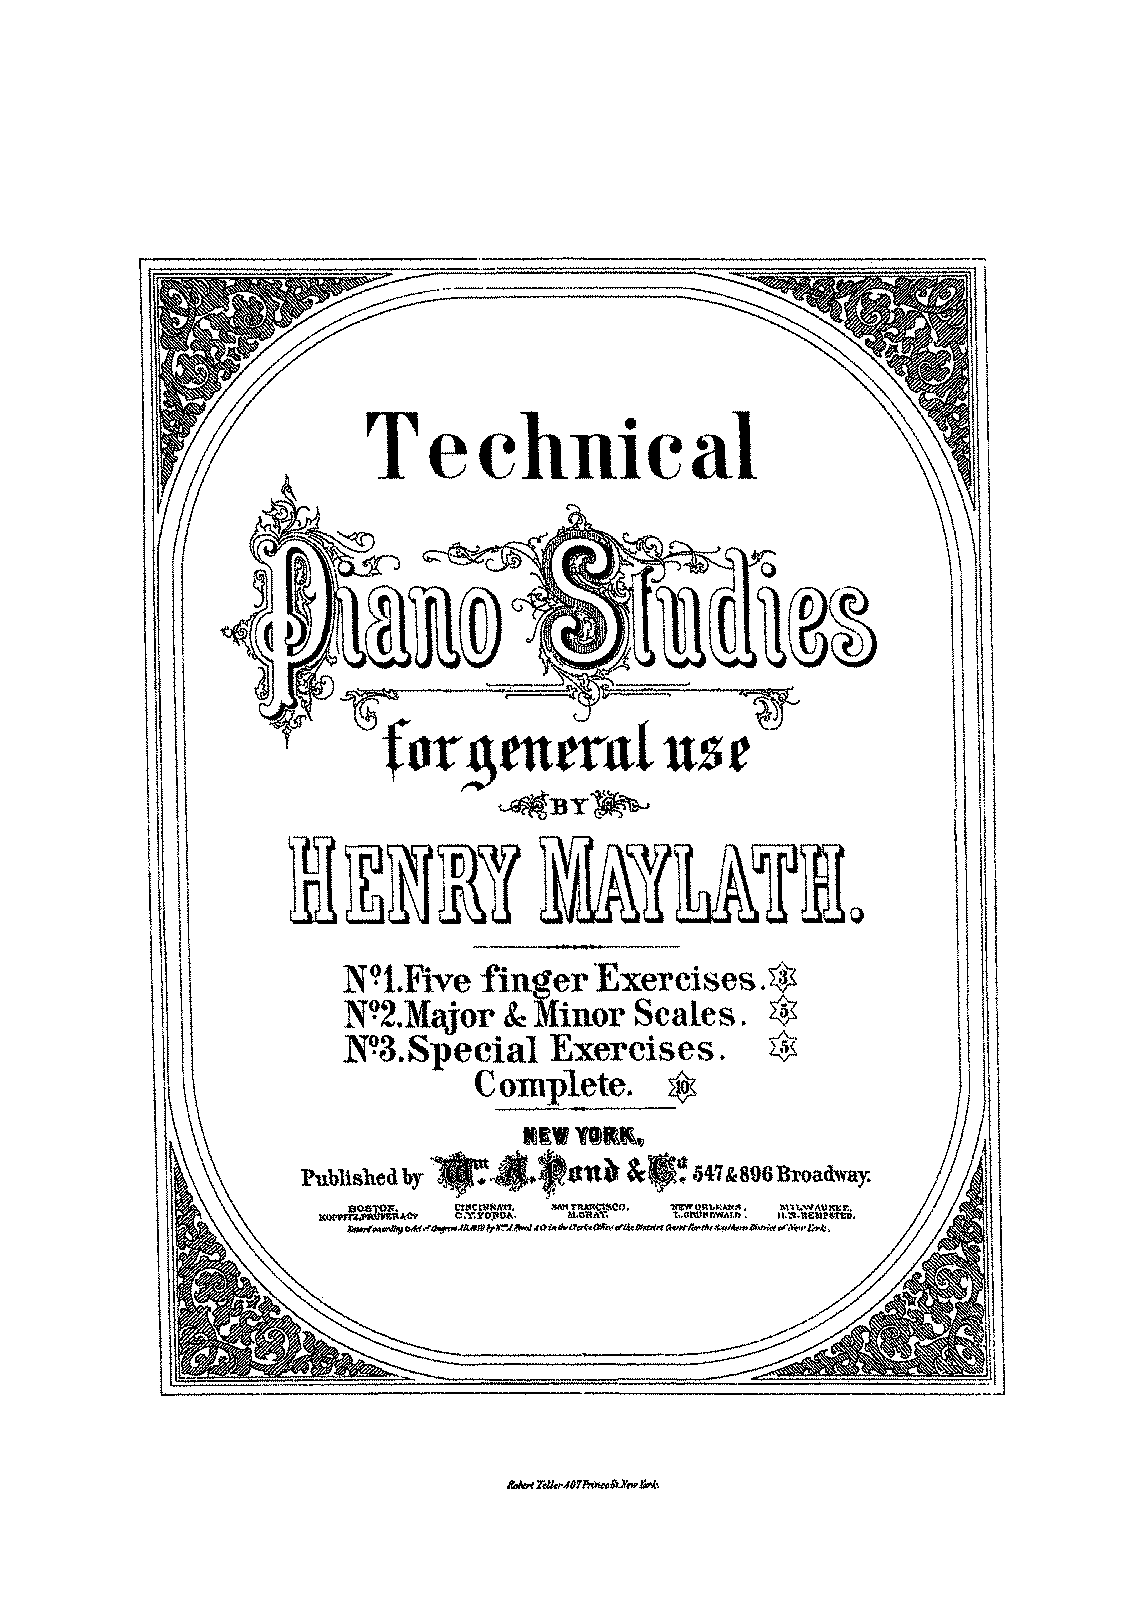 PMLP616584-Maylath - Technical Piano Studies for general use - Complete.pdf